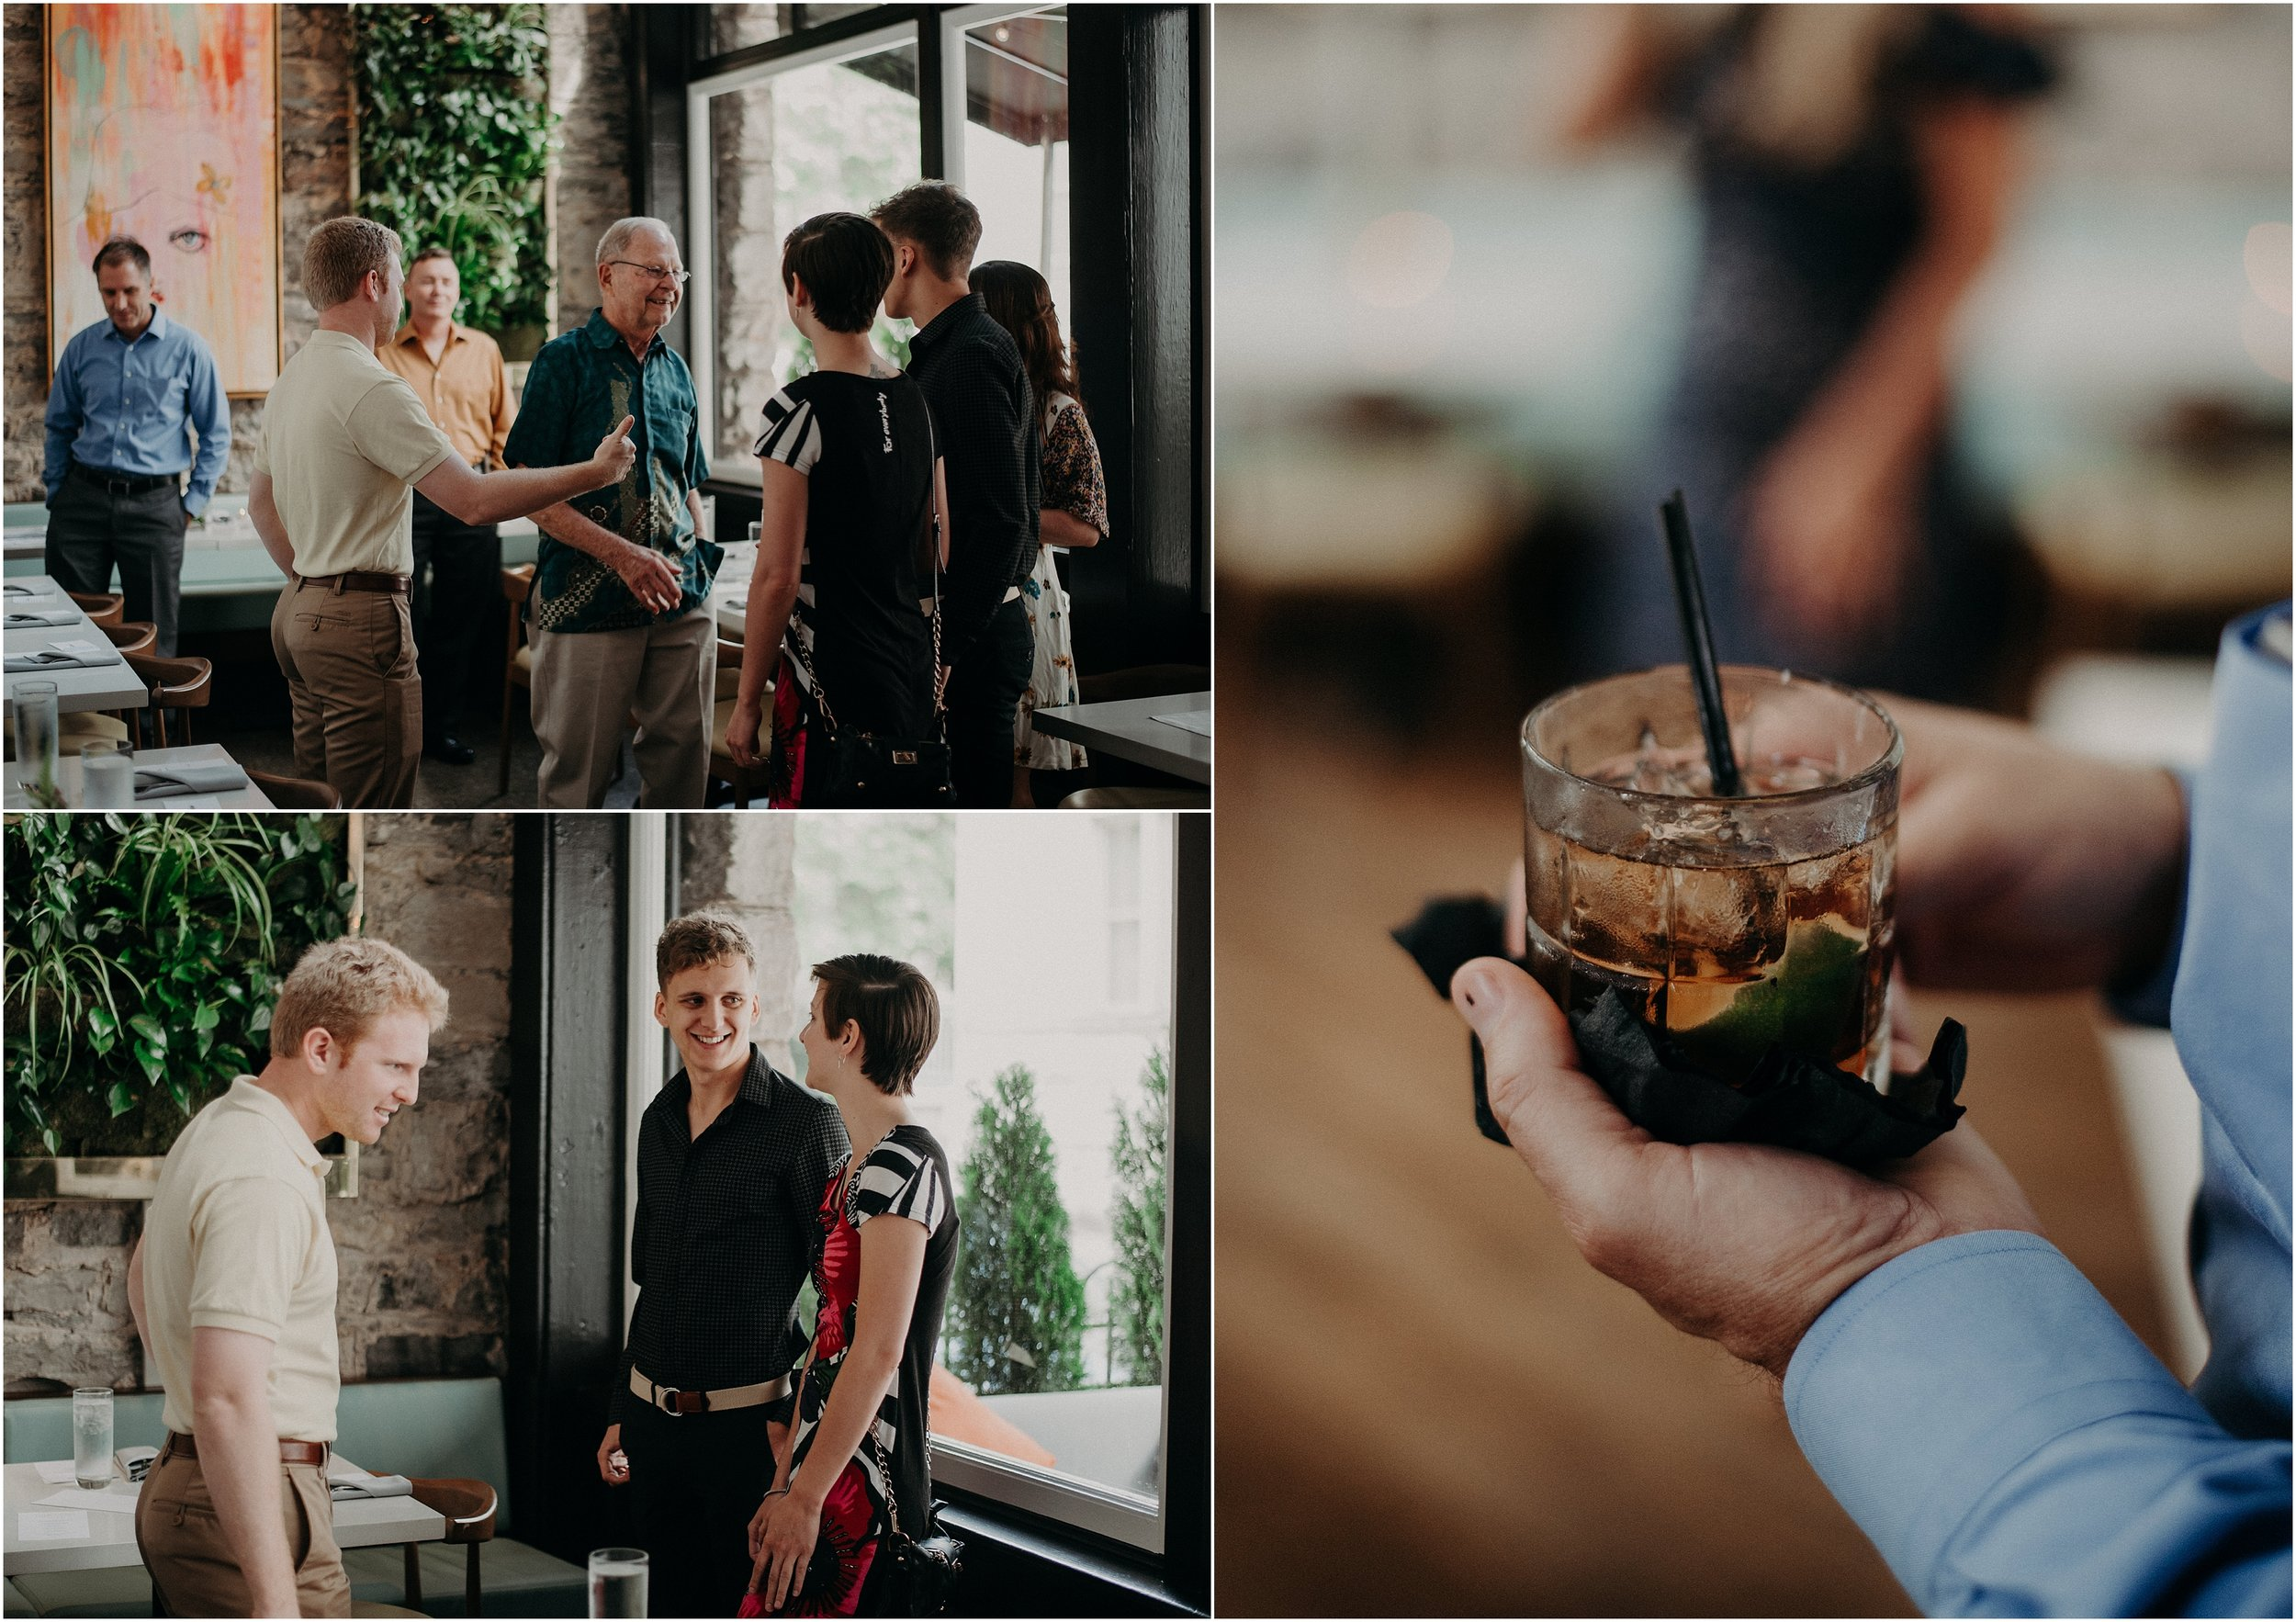 Rehearsal dinner at the Dwell Hotel in Chattanooga, Tennessee